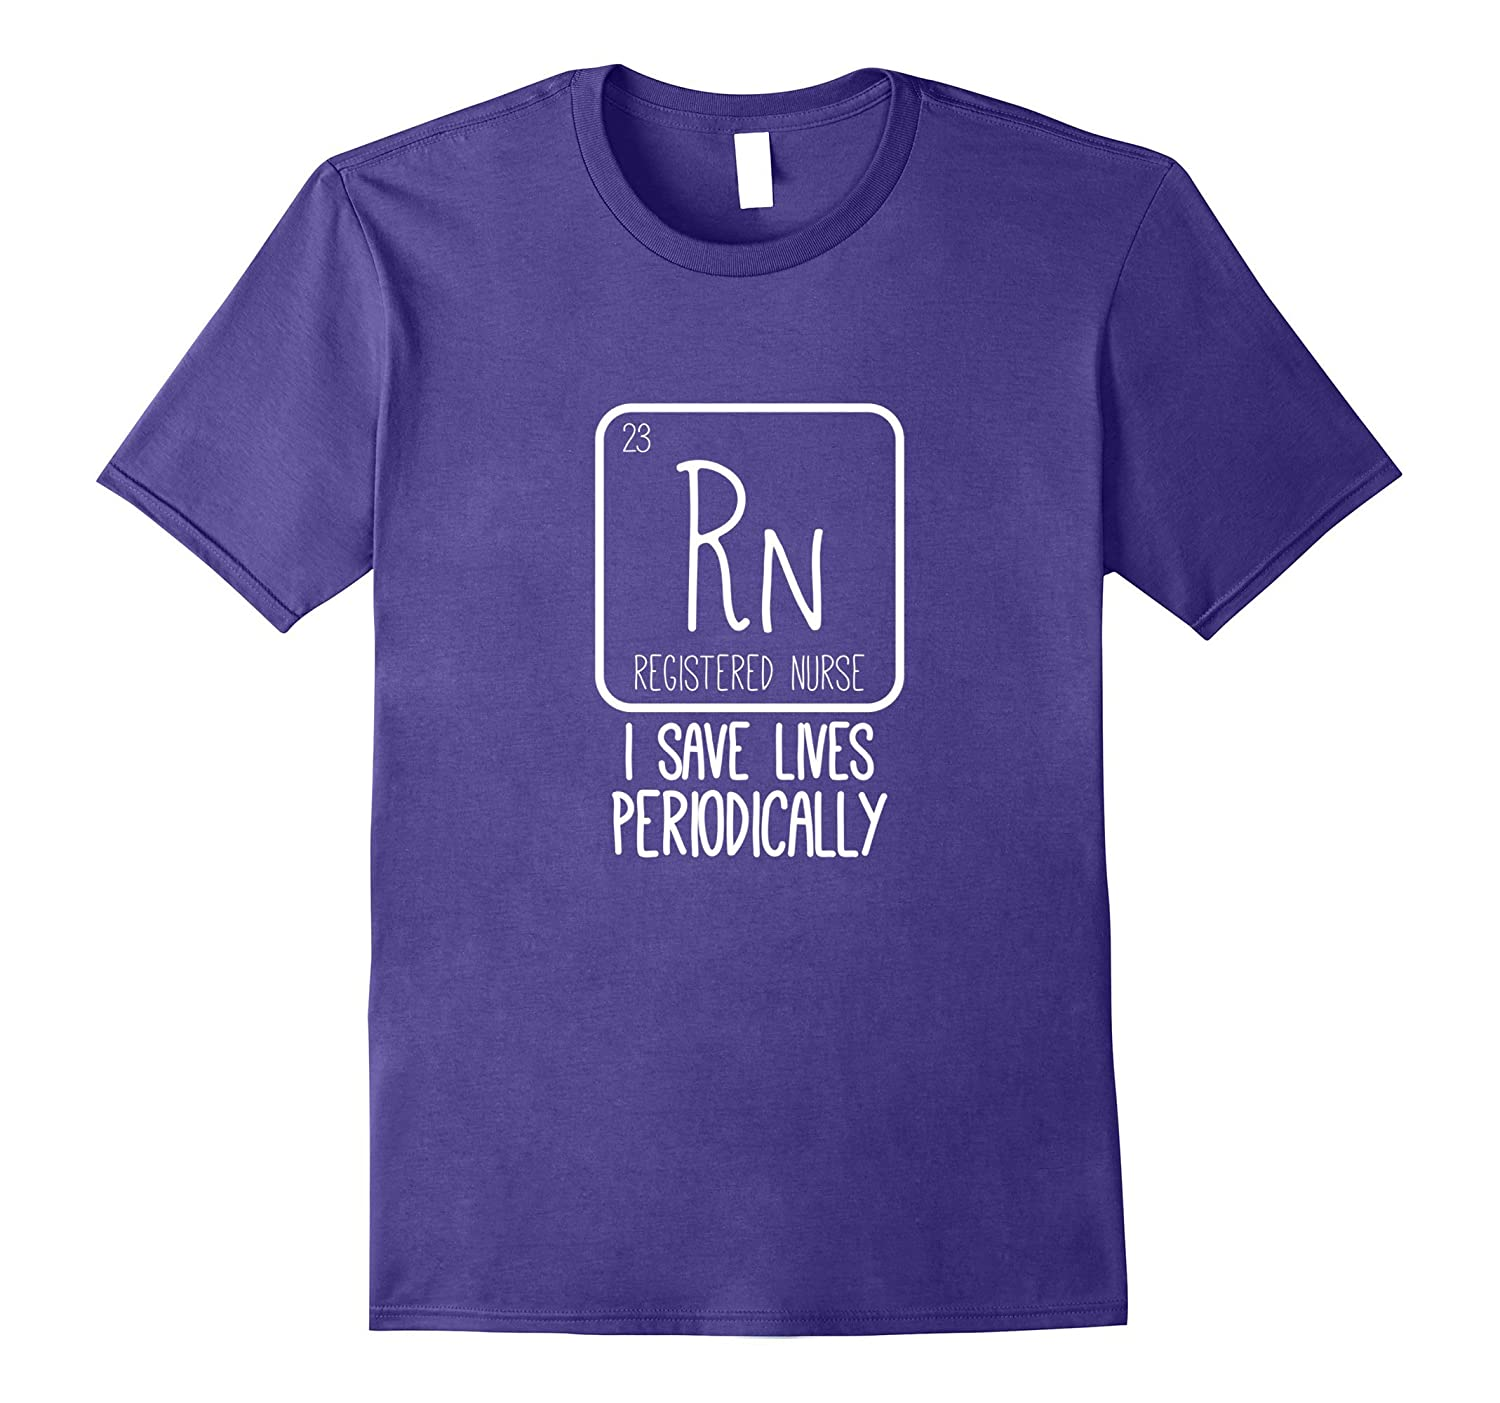 Funny Gifts for Nurses T Shirt- I Save Lives Periodically-ANZ